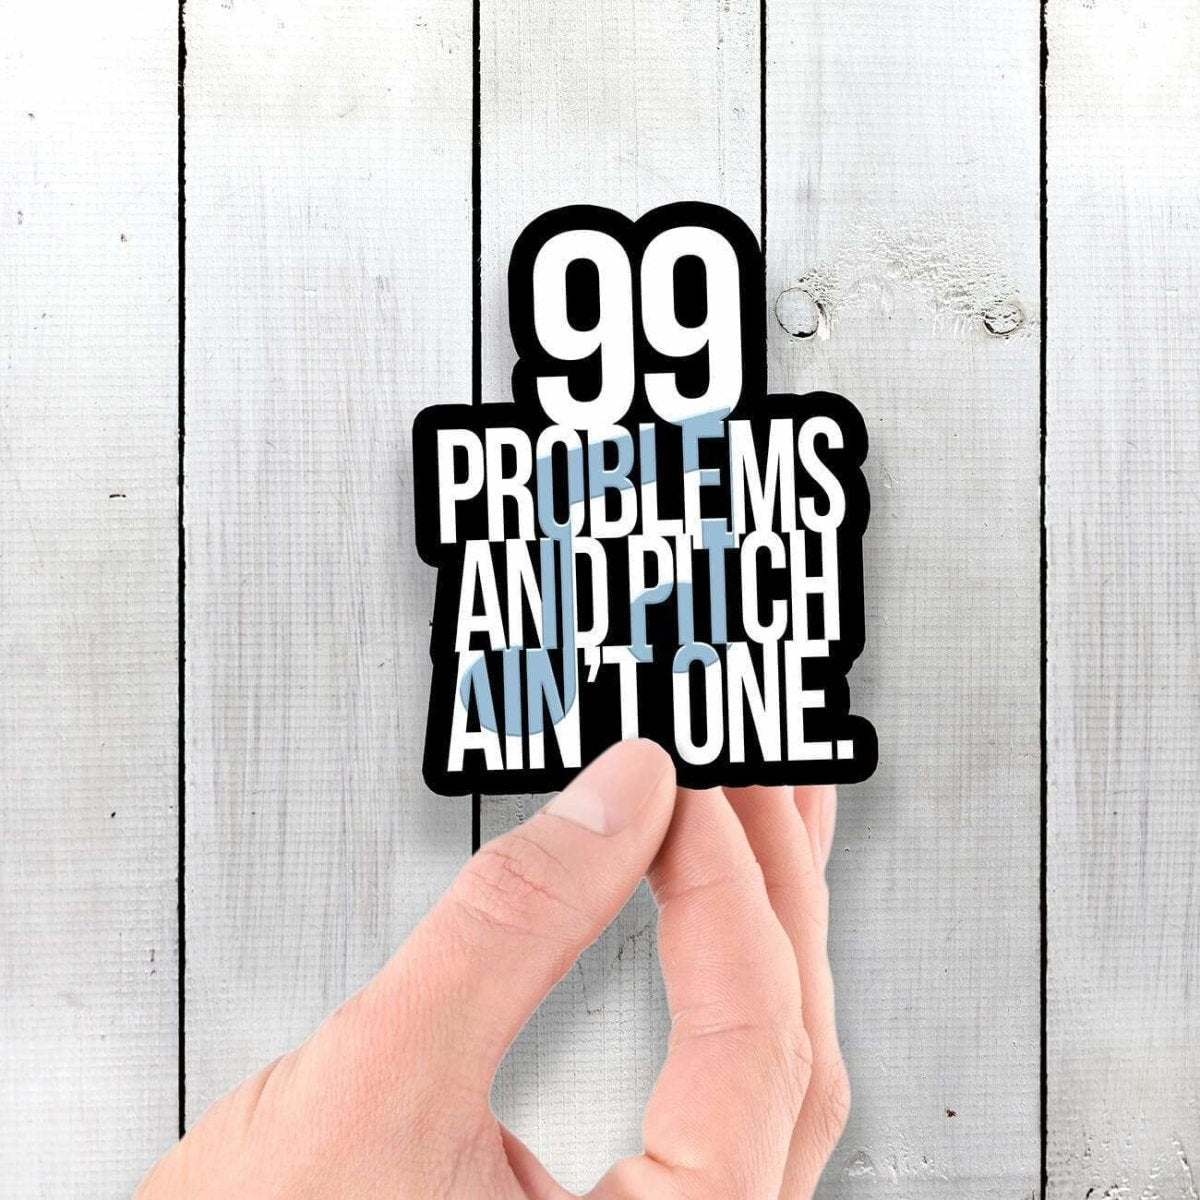 99 Problems and Pitch Ain't One 🎵 Vinyl Sticker - Dan Pearce Sticker Shop